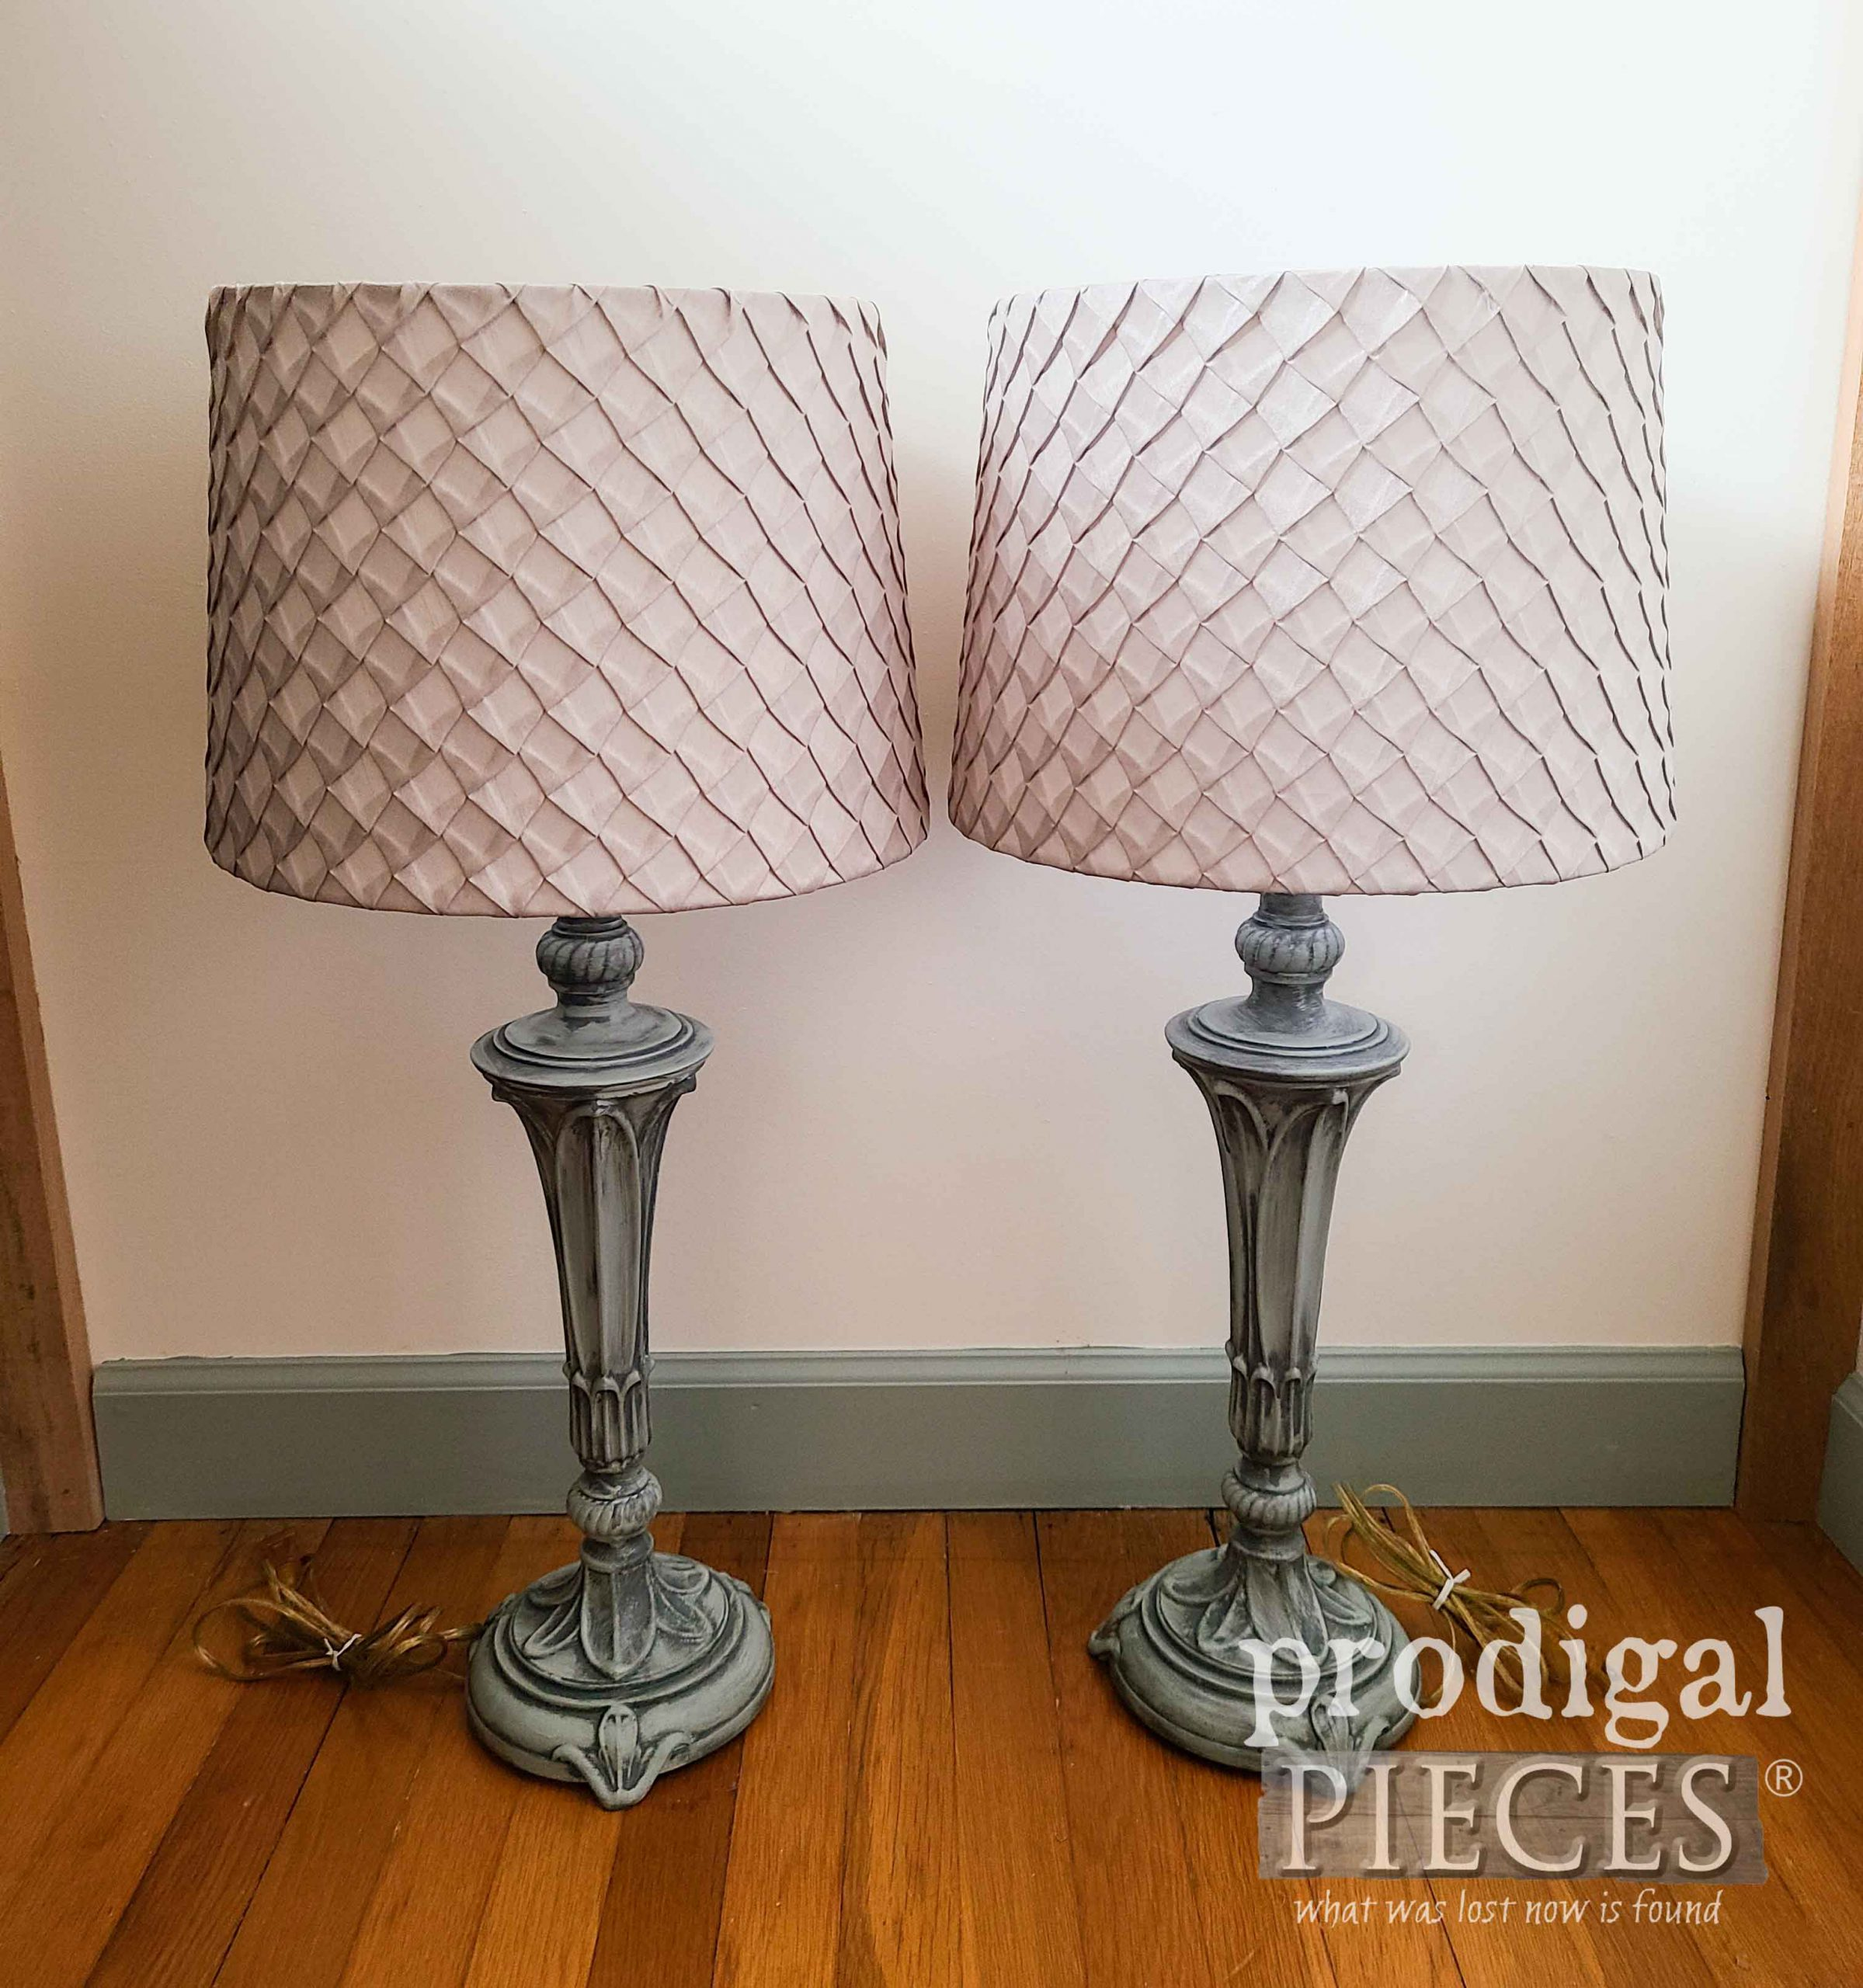 Vintage Painted Table Lamps Pair Refinished by Larissa of Prodigal Pieces | prodigalpieces.com #prodigalpieces #vintage #diy #home #homedecor